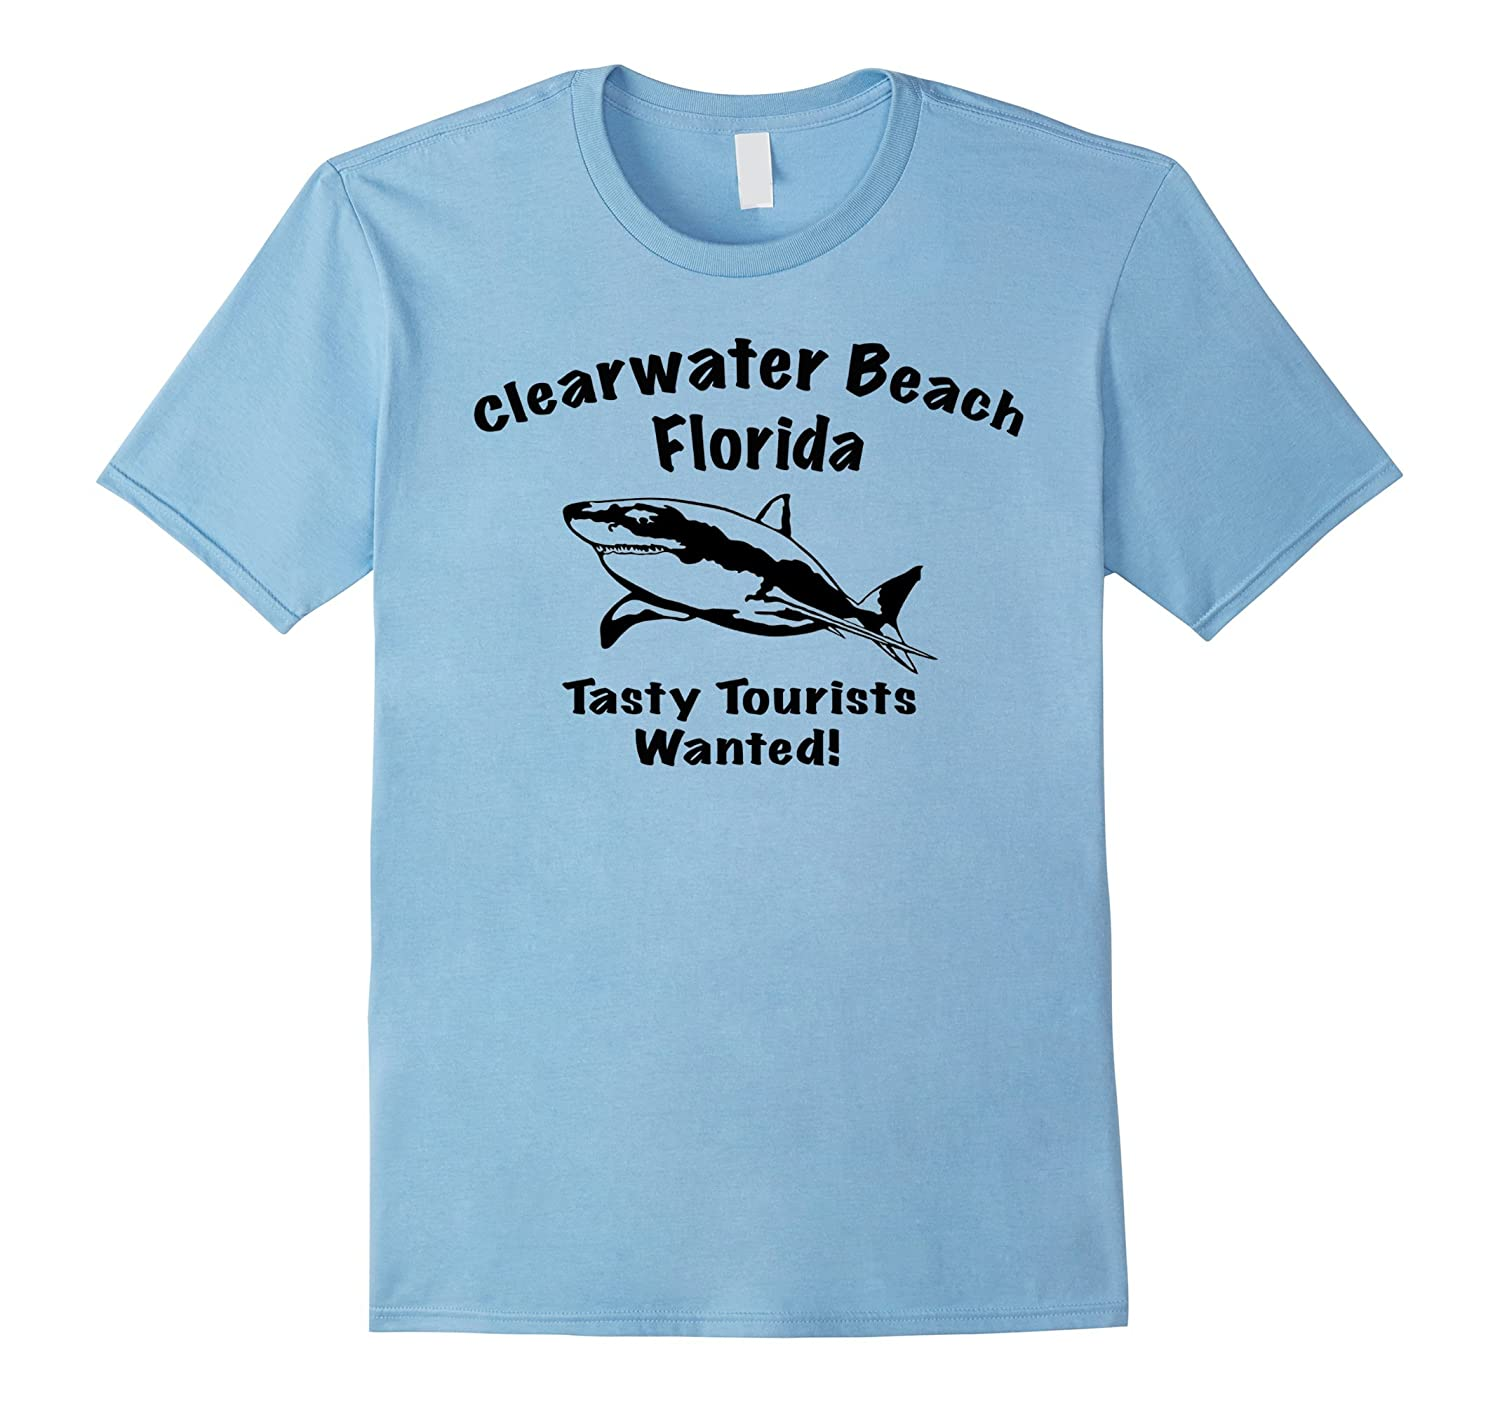 Clearwater Beach Florida Tasty Tourists Wanted tee shirt-TH